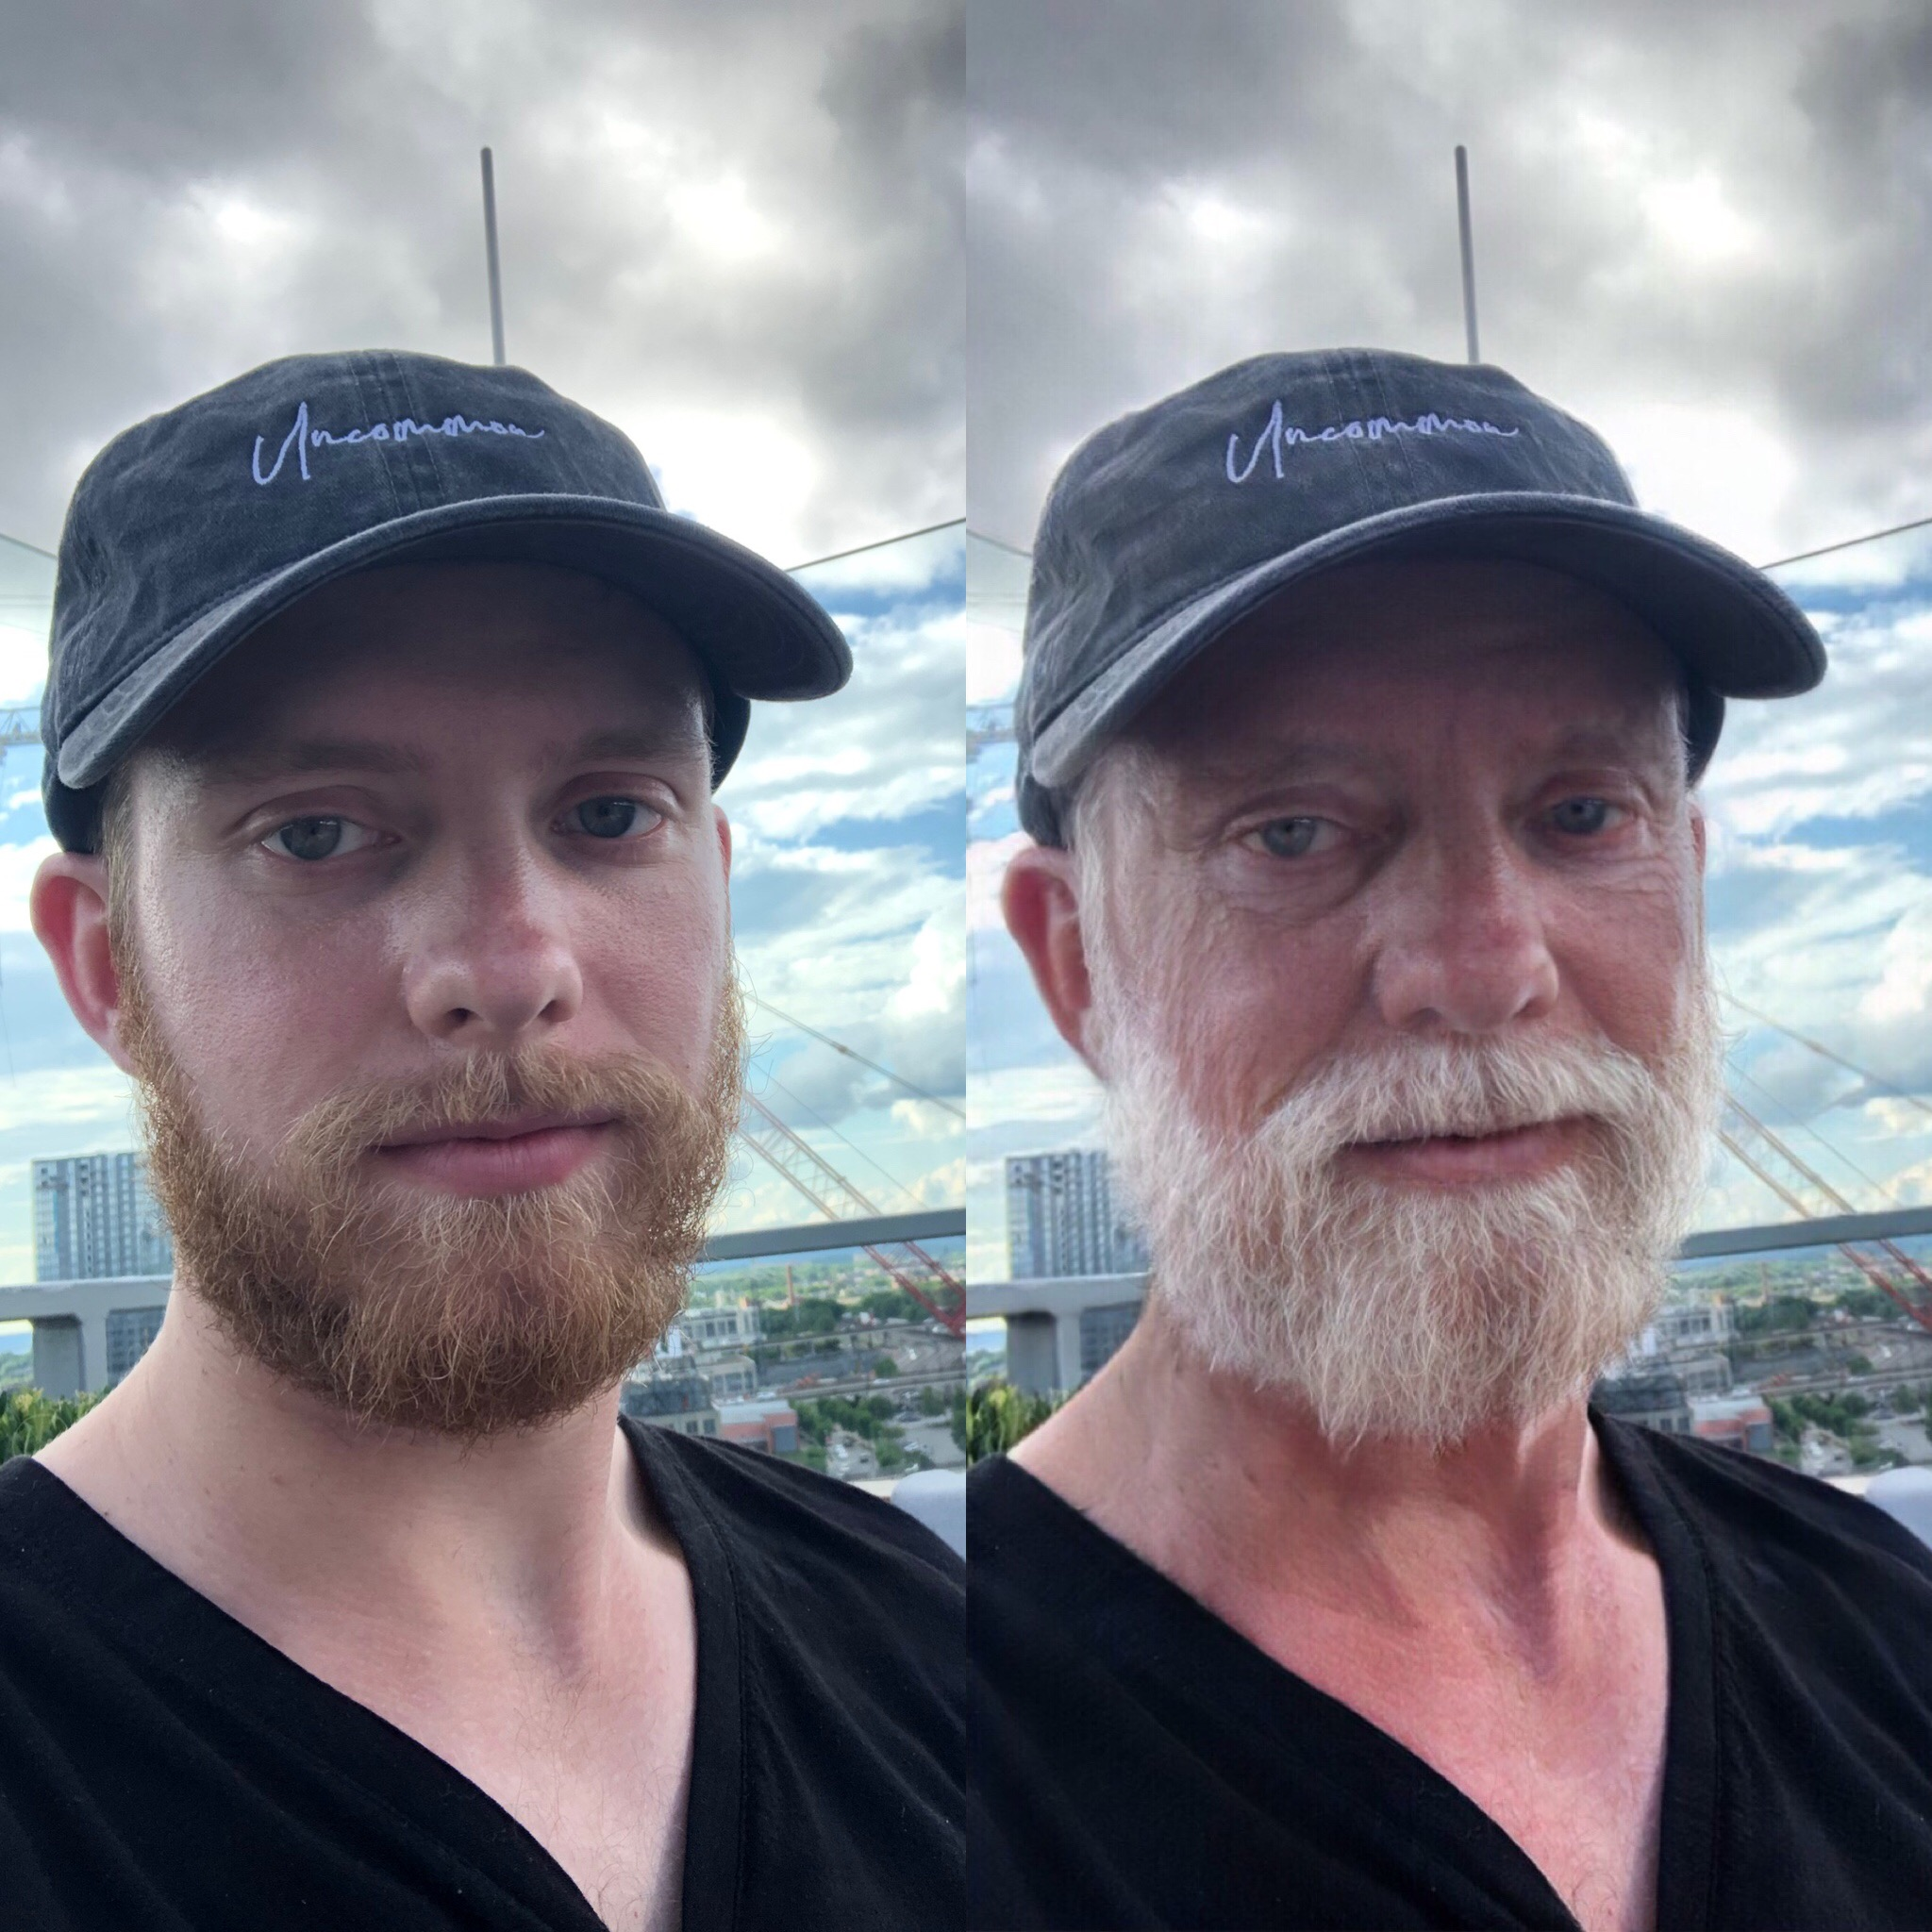 FaceApp's old age filter